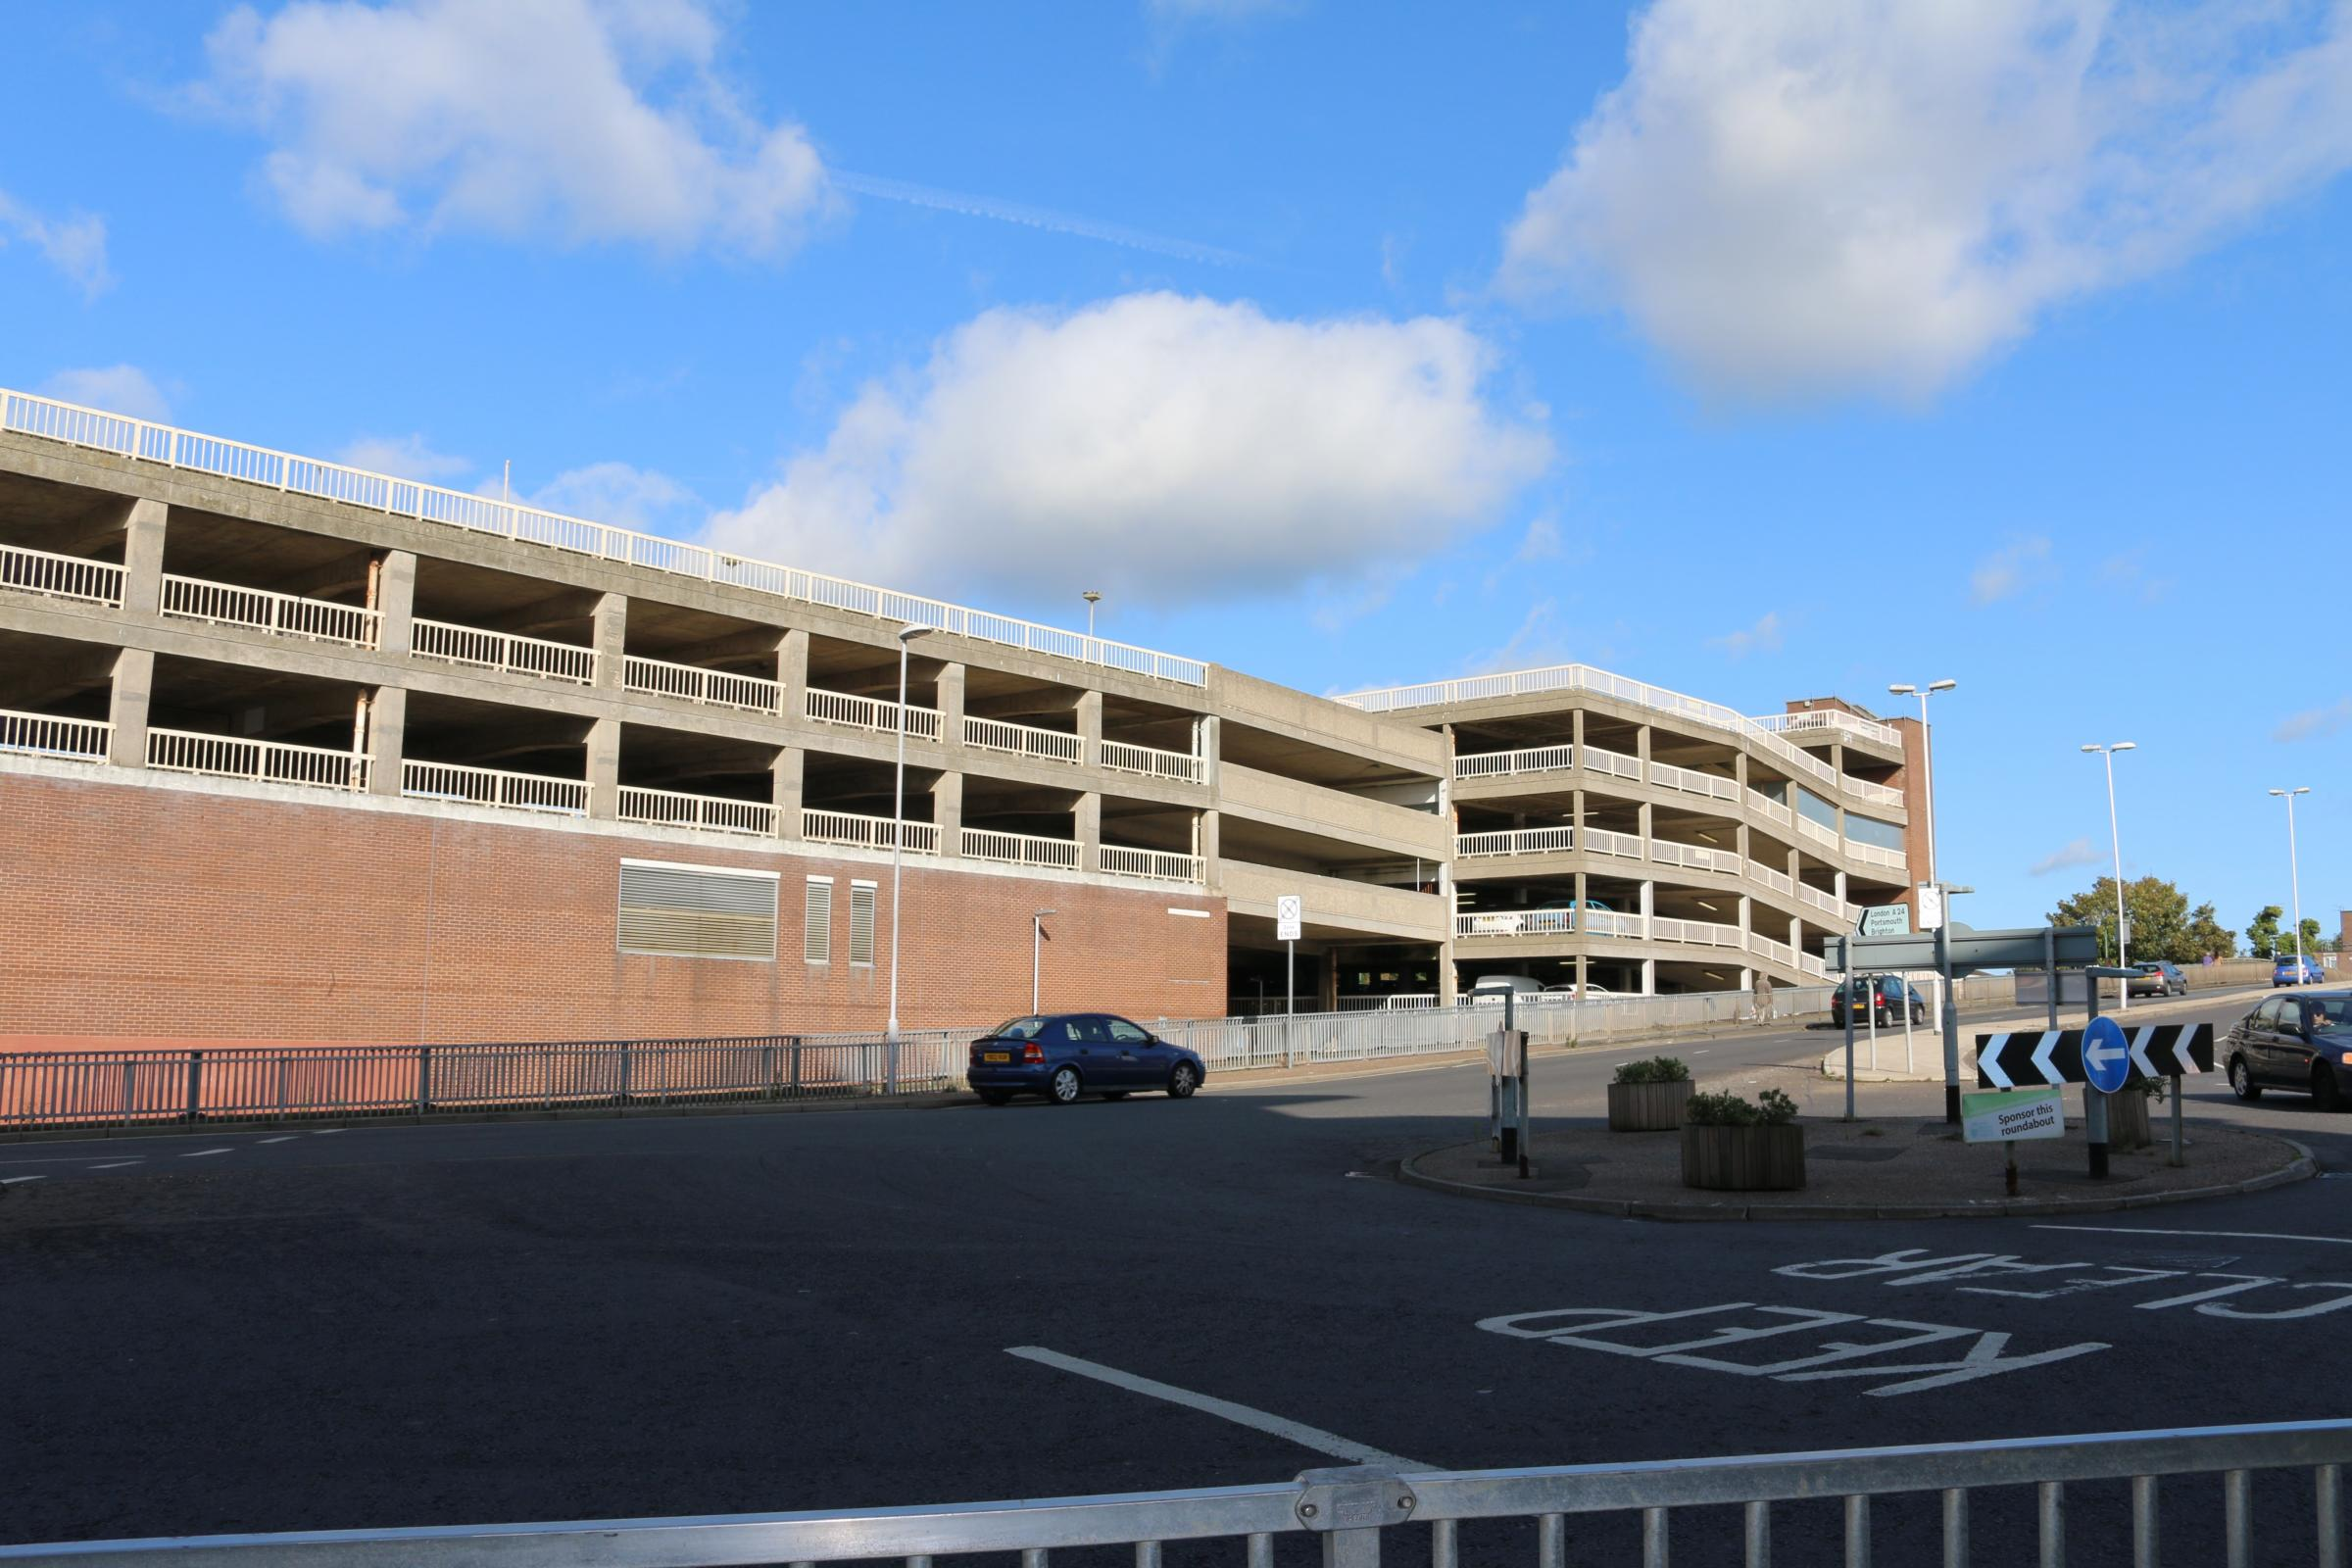 Car park work halted by police over seagull nest by police